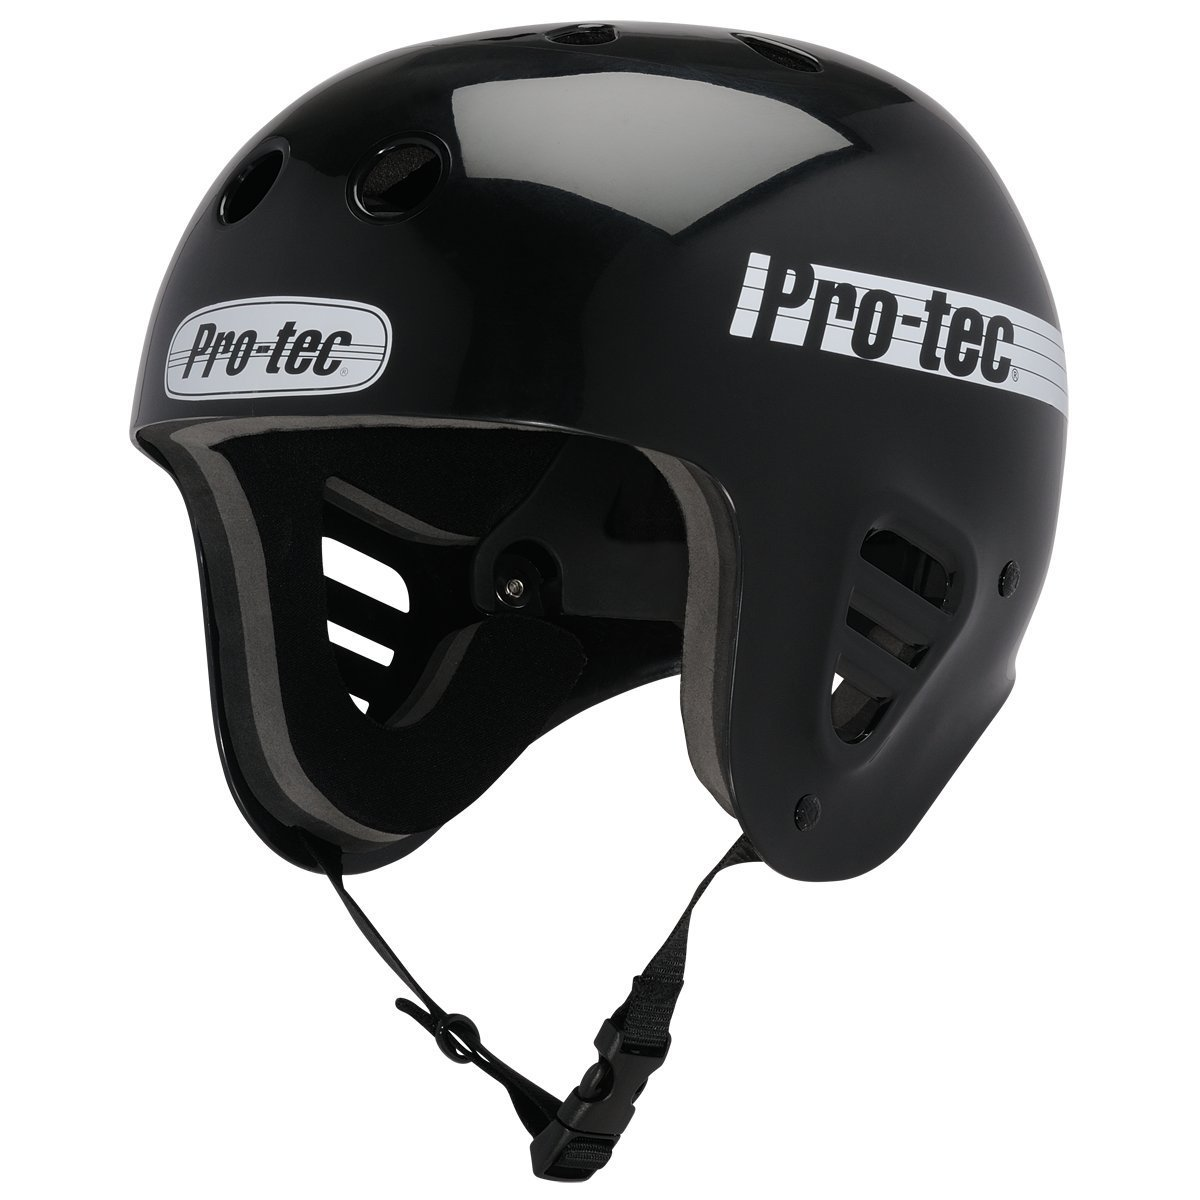 Pro-Tec Helm Full Cut Water - Casco de wakeboarding 11813